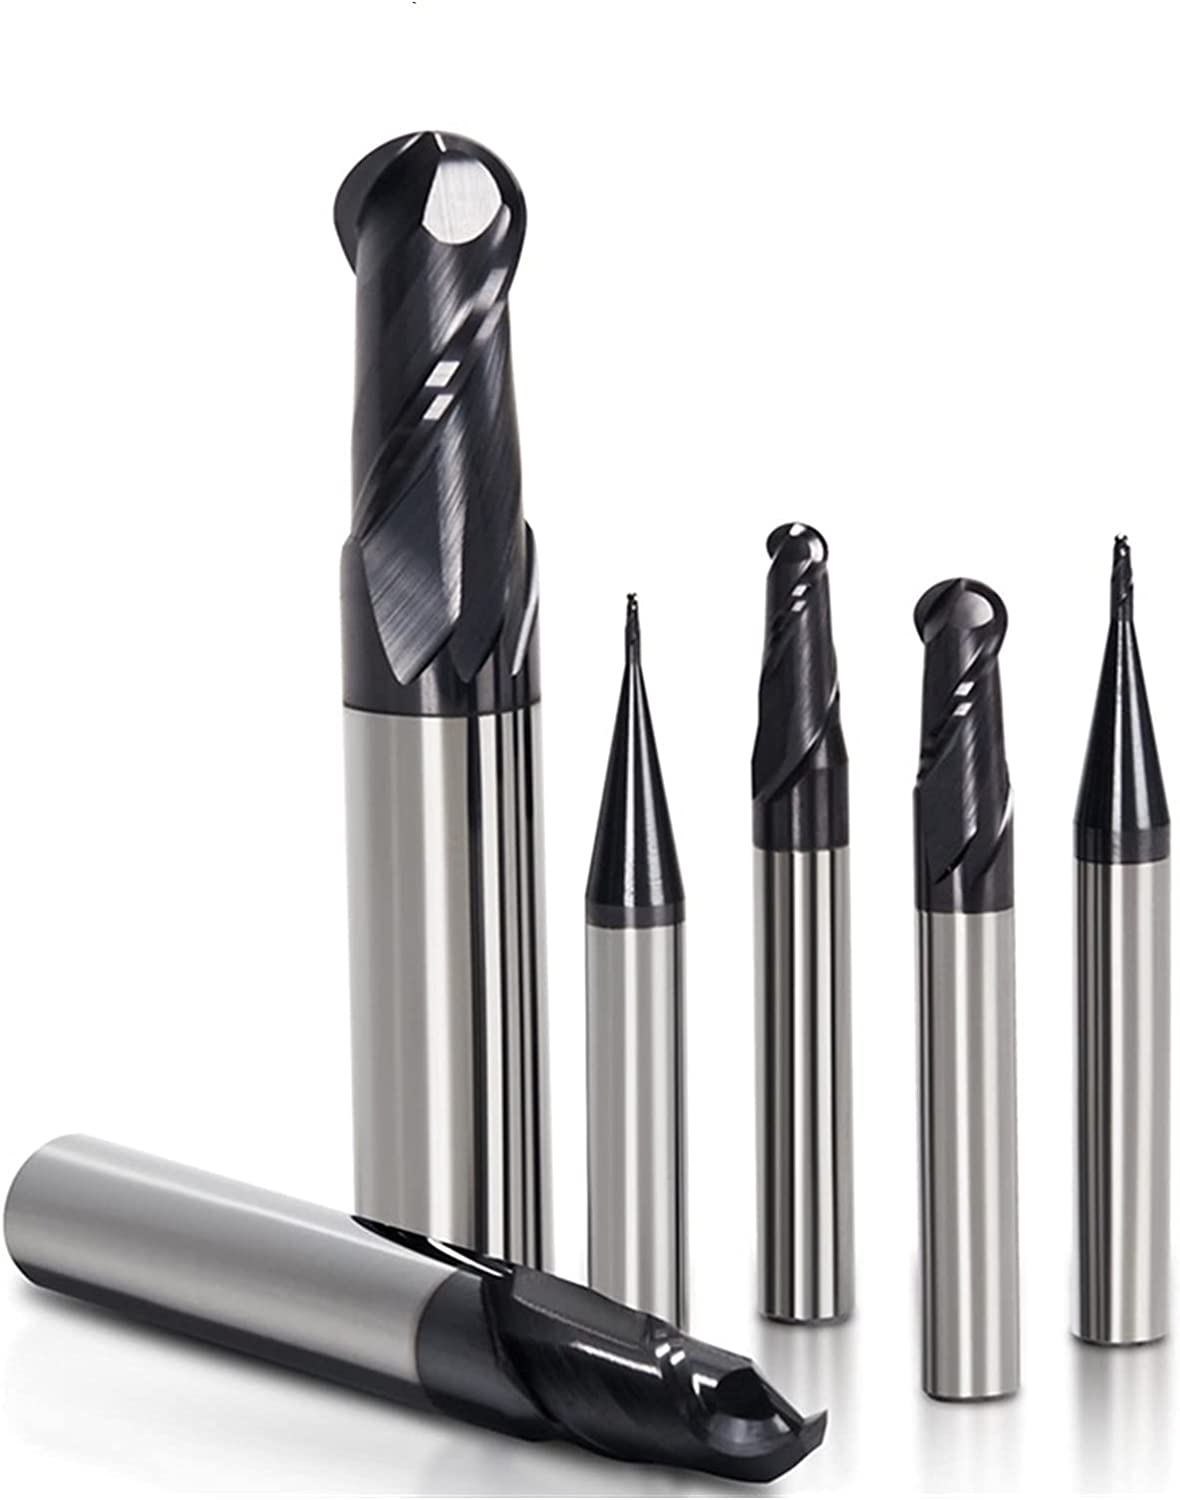 SYHML-SHOP Milling Cutter HRC 50° 2 Nose favorite Ball End Mill Flutes Tu Max 74% OFF